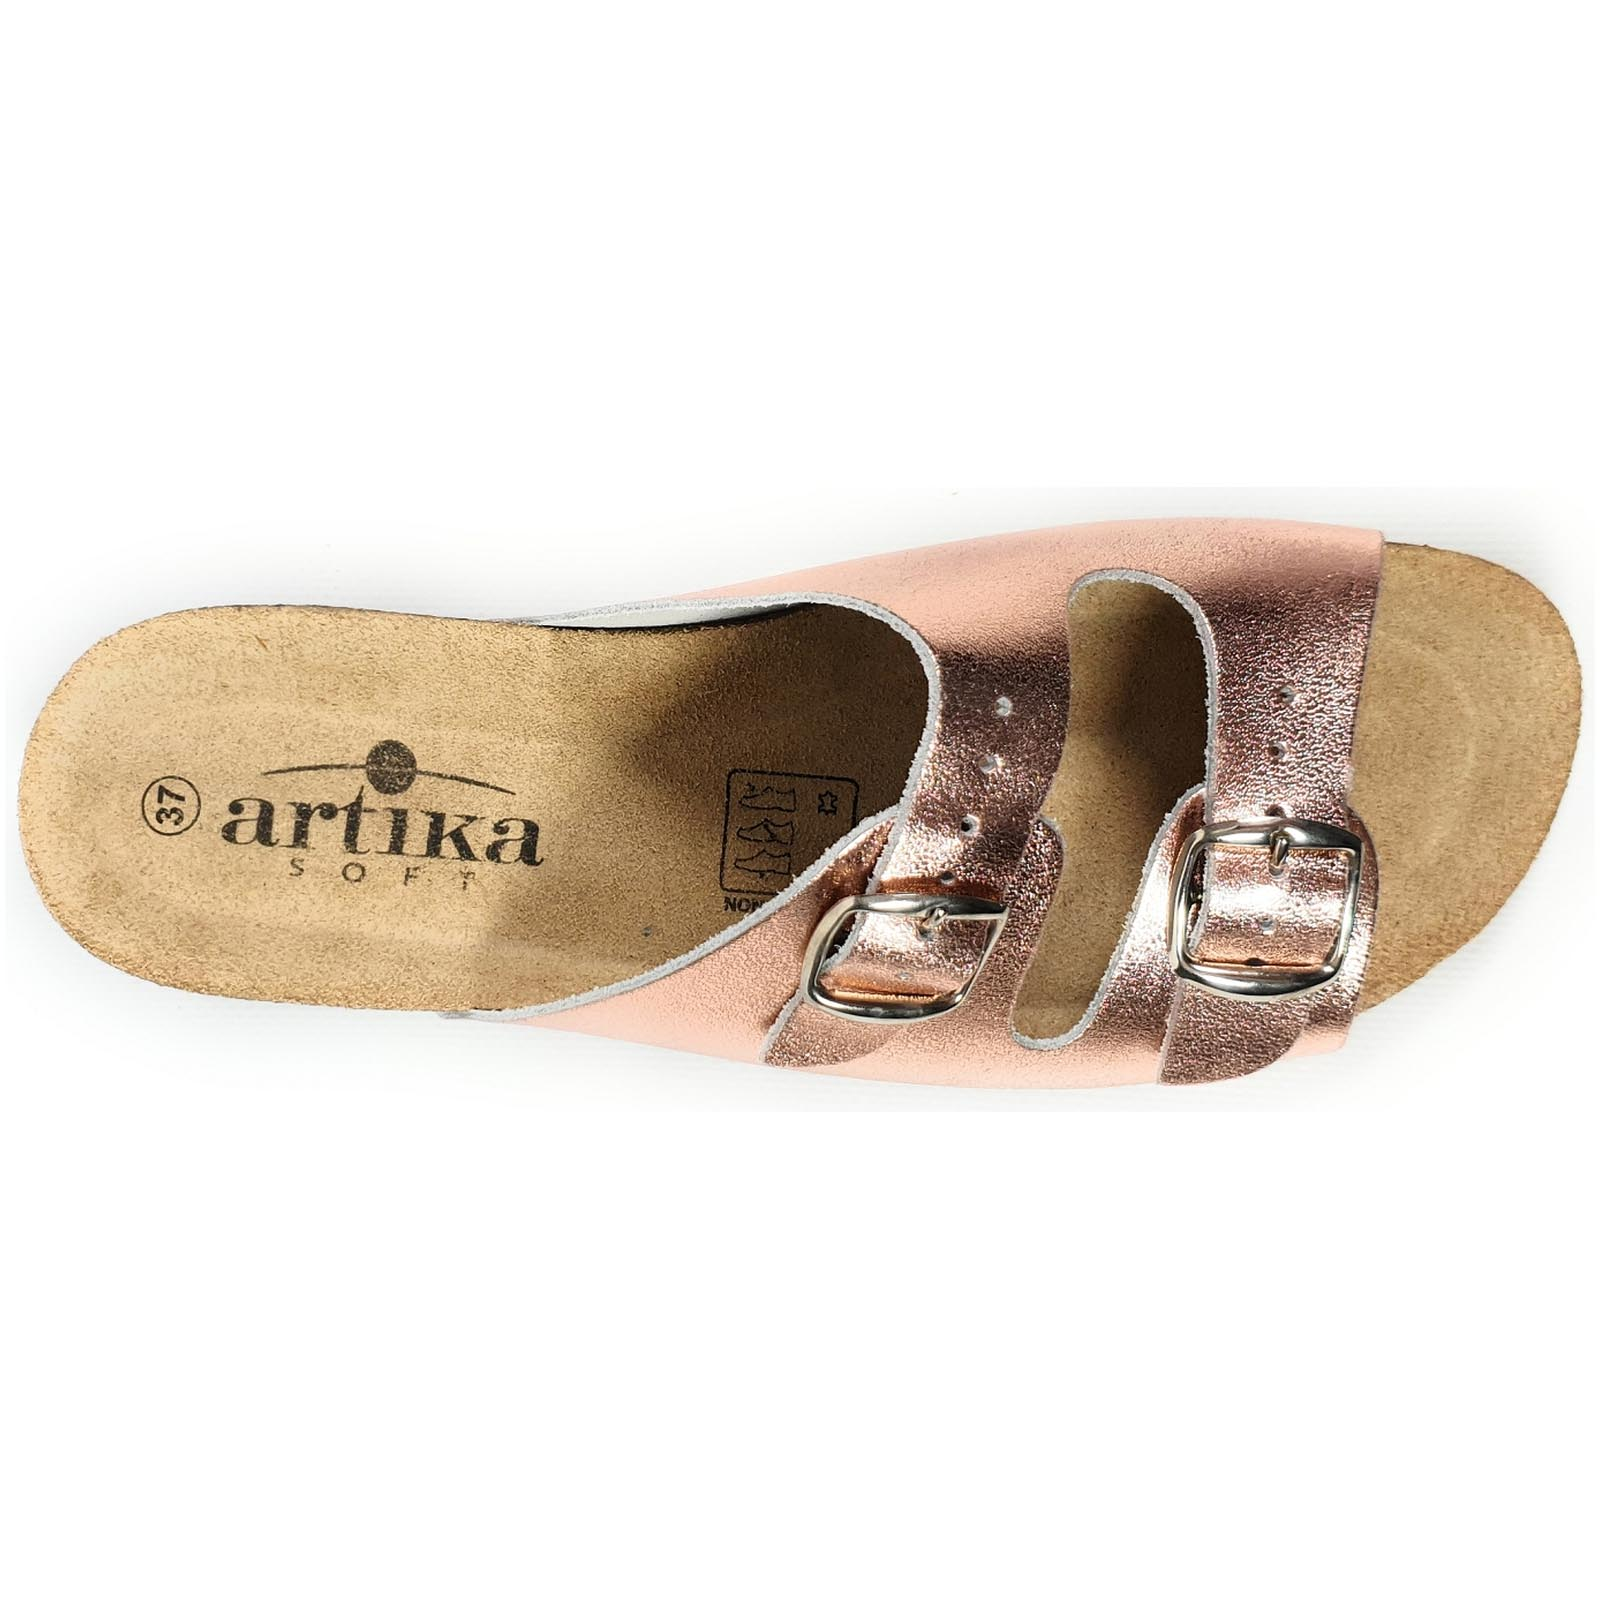 Artika mules et sabots basque rose1237104_5